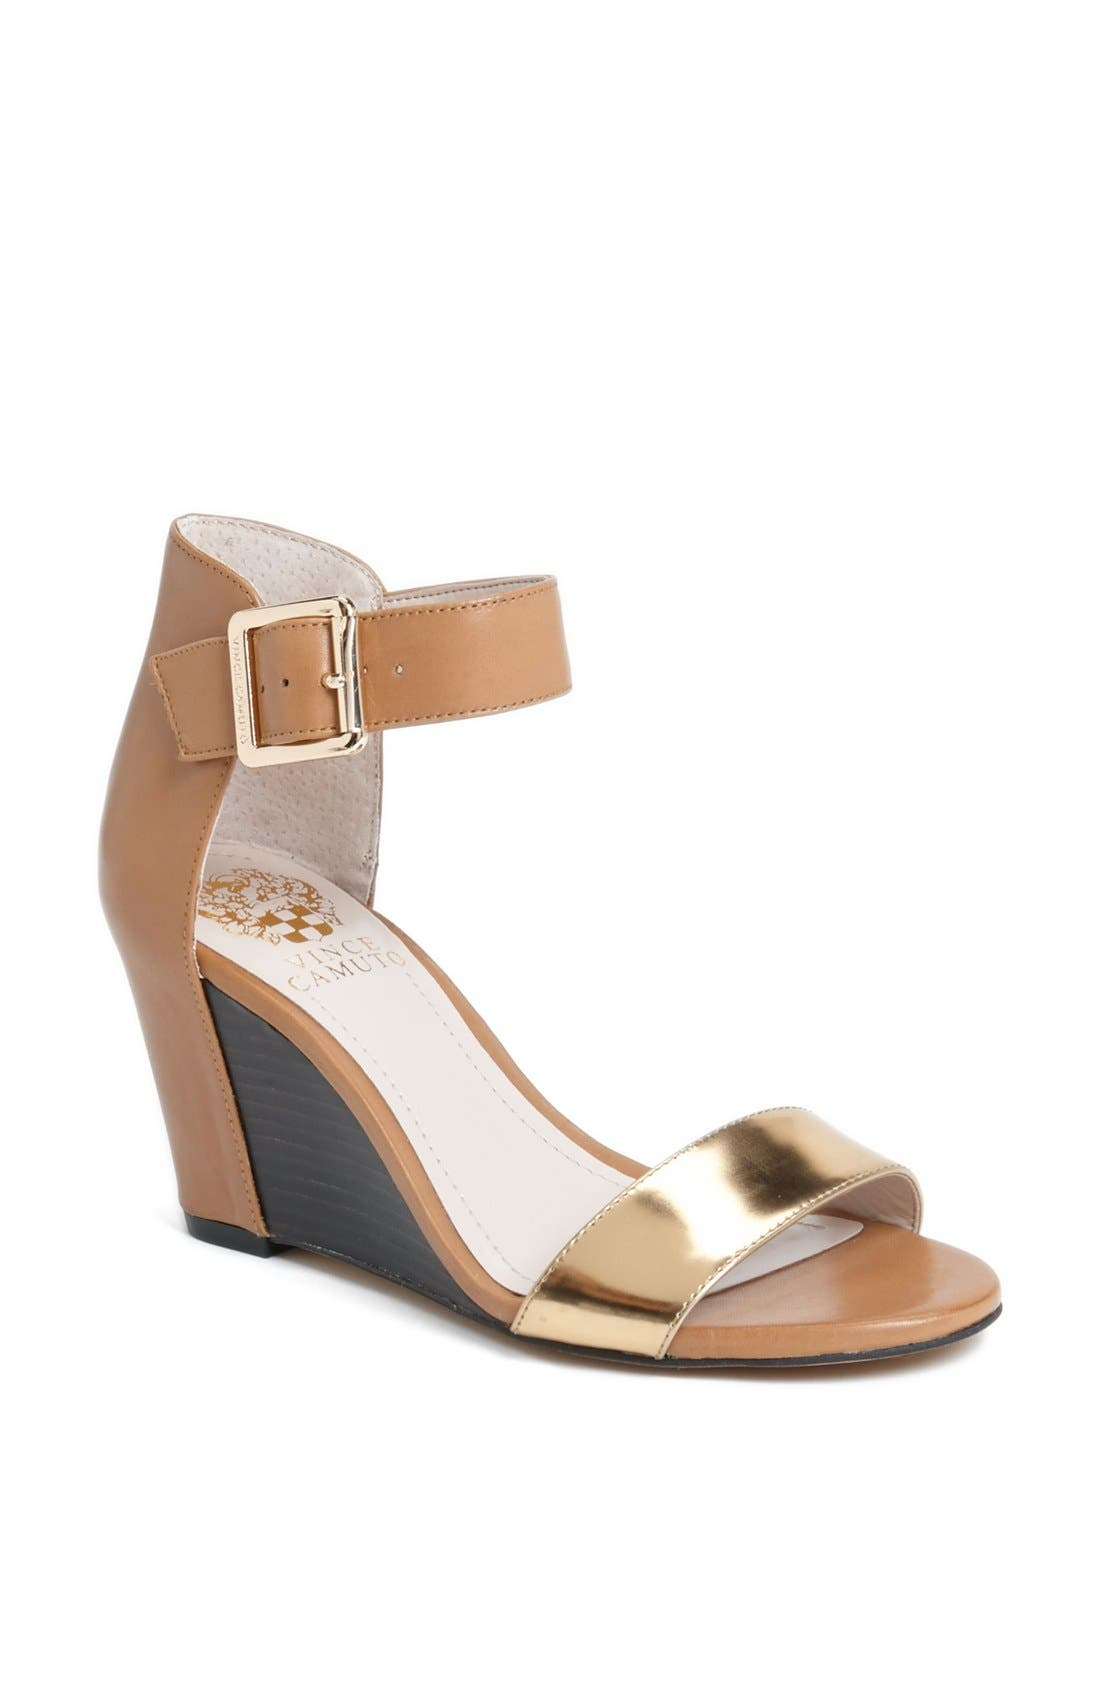 Main Image - Vince Camuto 'Luciah' Ankle Strap Wedge Sandal